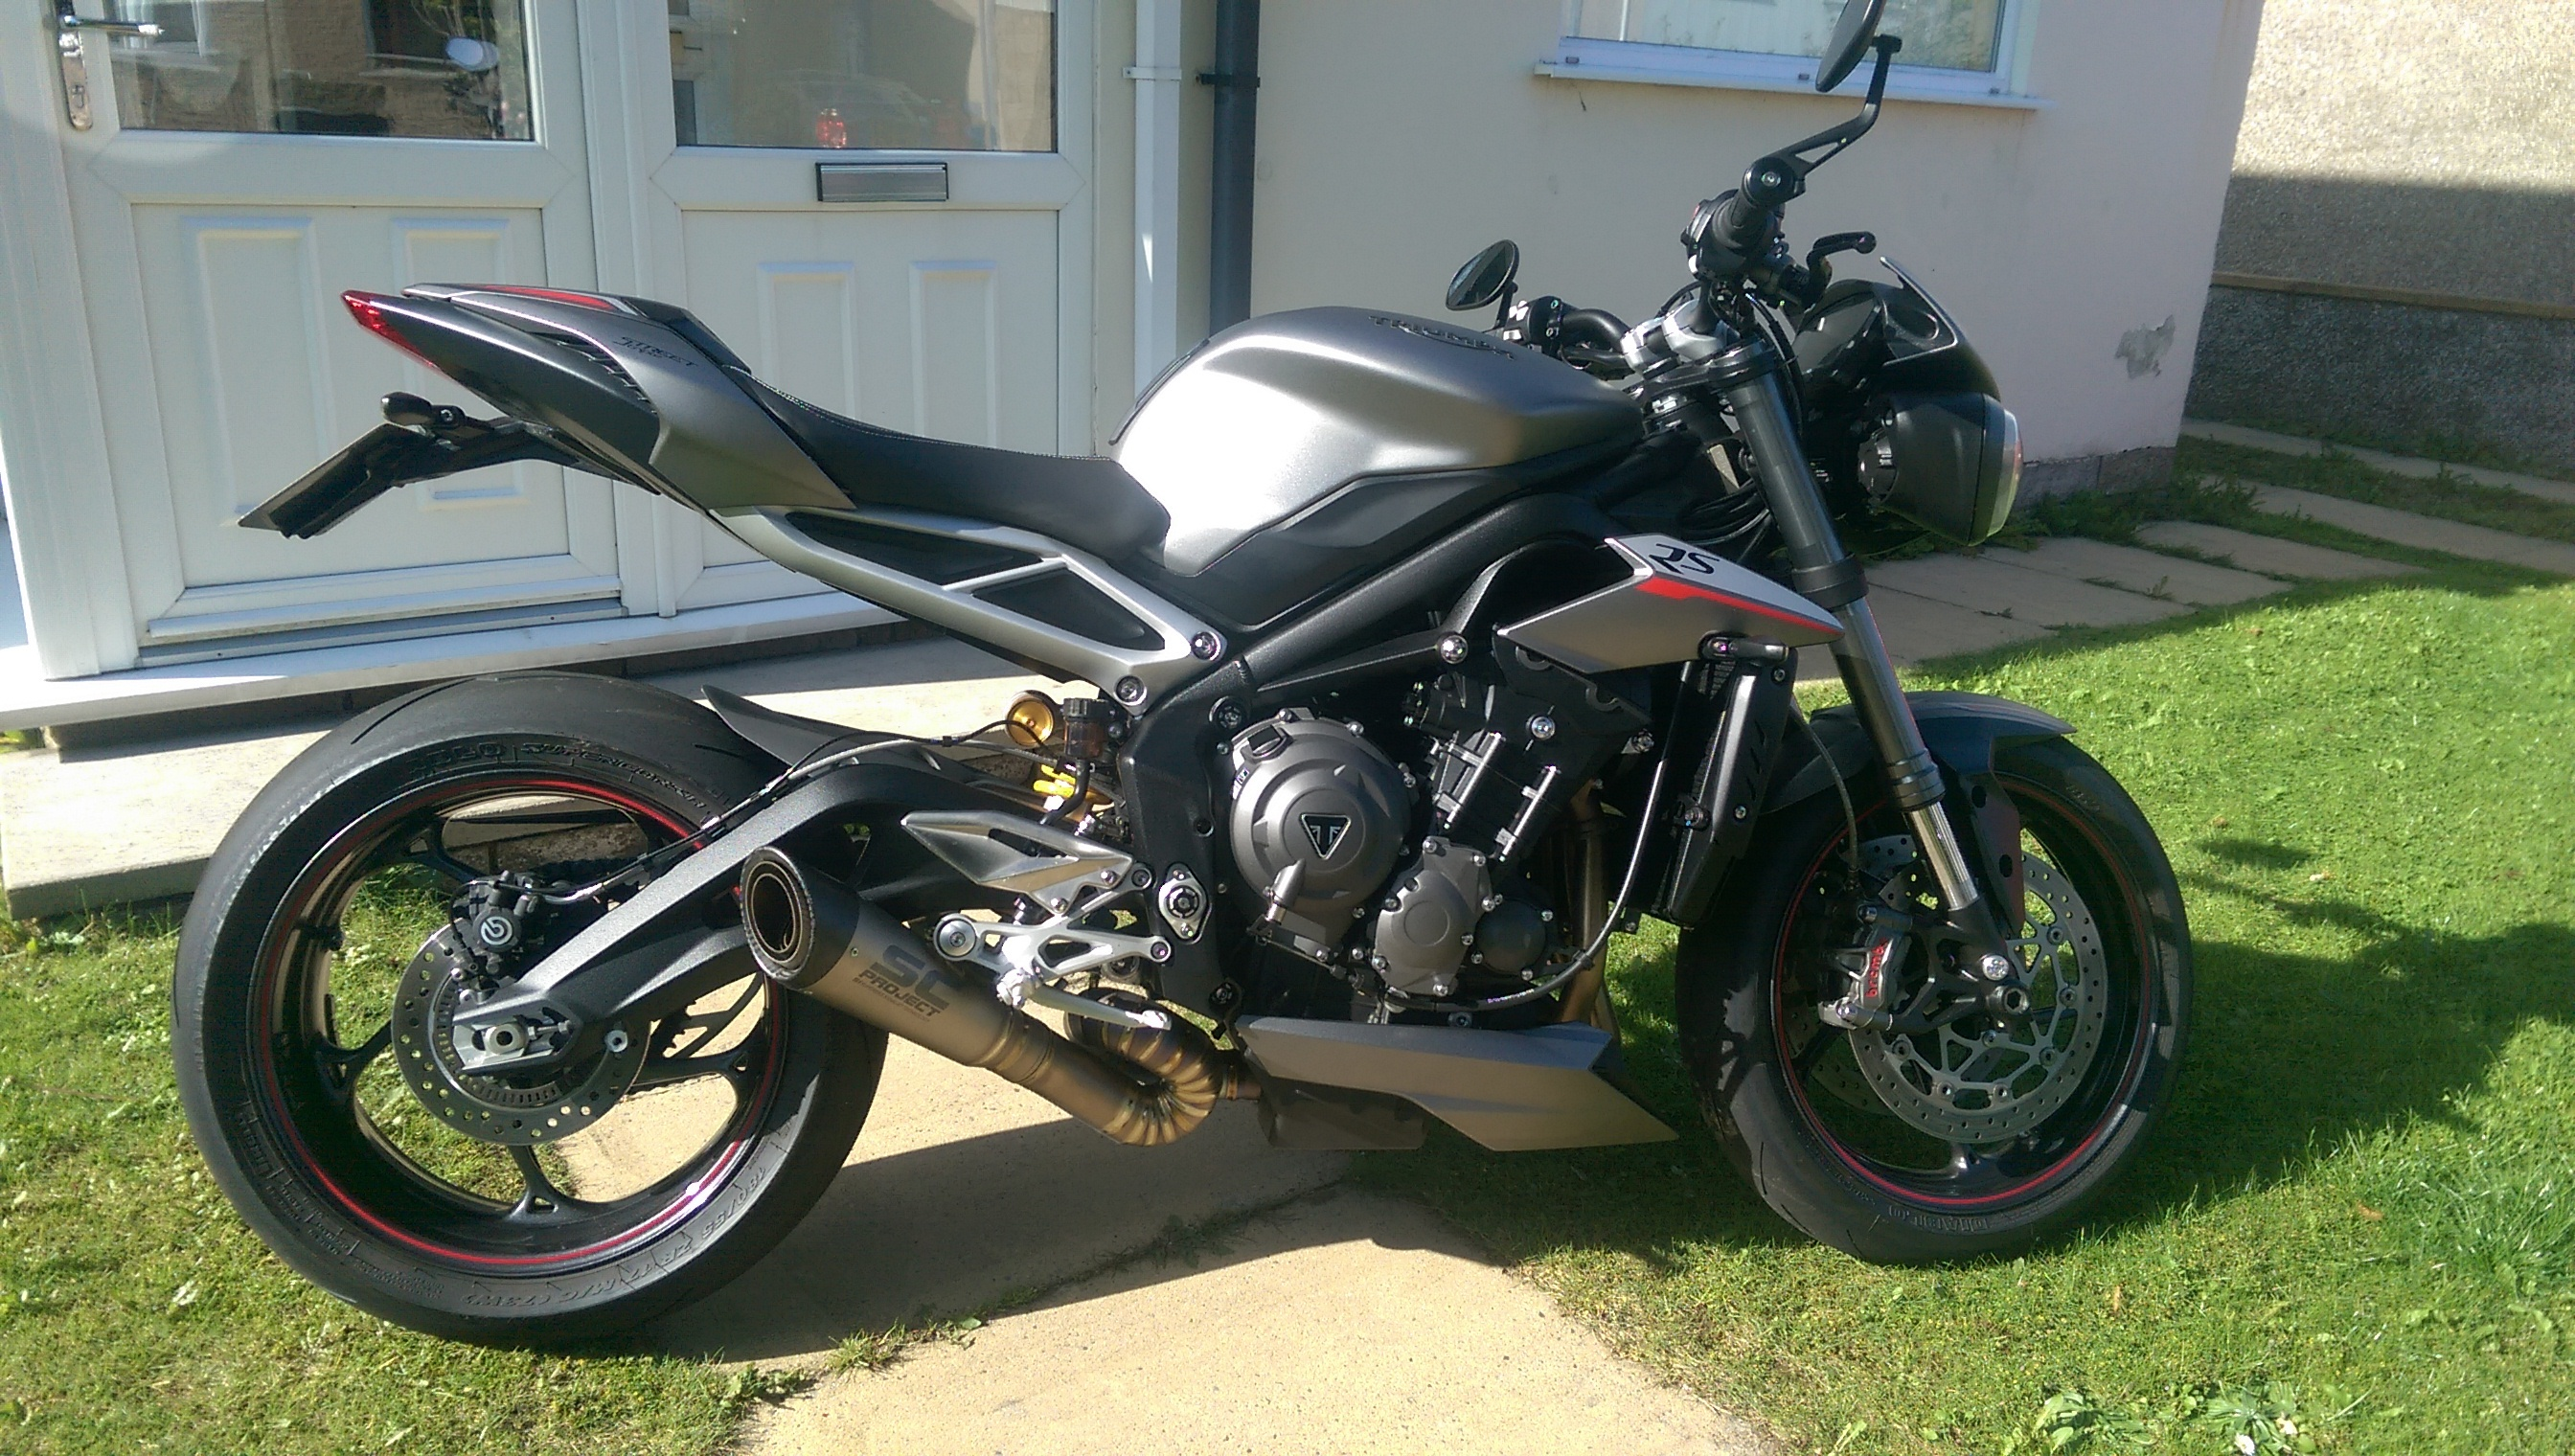 street triple 765 rs for sale the triumph forum. Black Bedroom Furniture Sets. Home Design Ideas